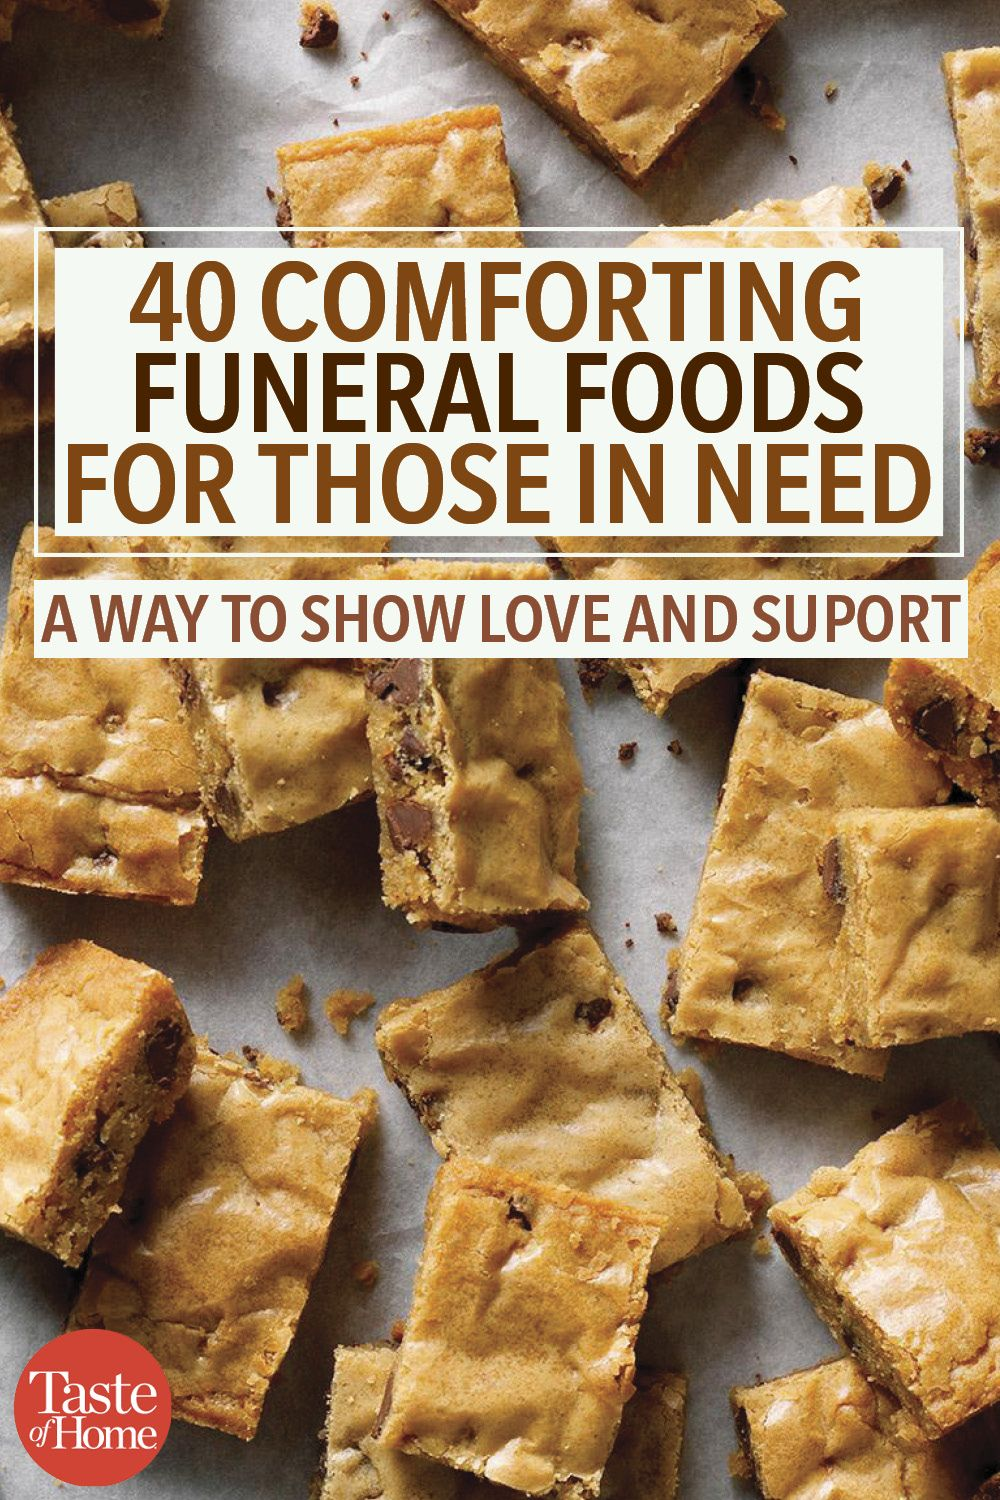 40 Comforting Funeral Foods for Those in Need